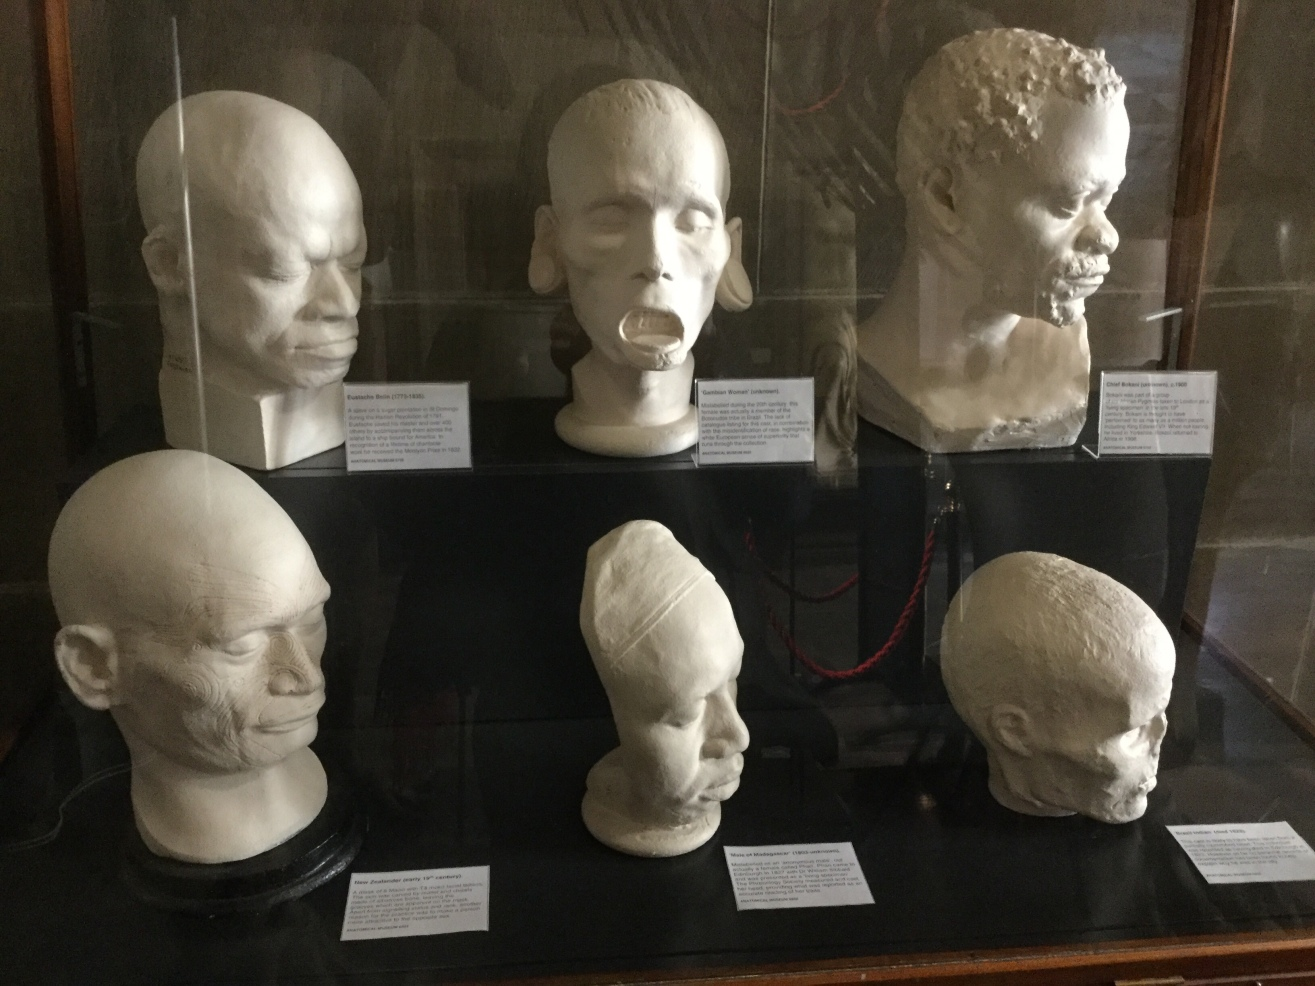 A collection of life masks from men and women of the world, Anatomical Museum collection, Old Medical School, University of Edinburgh, 2018 Amy Cools